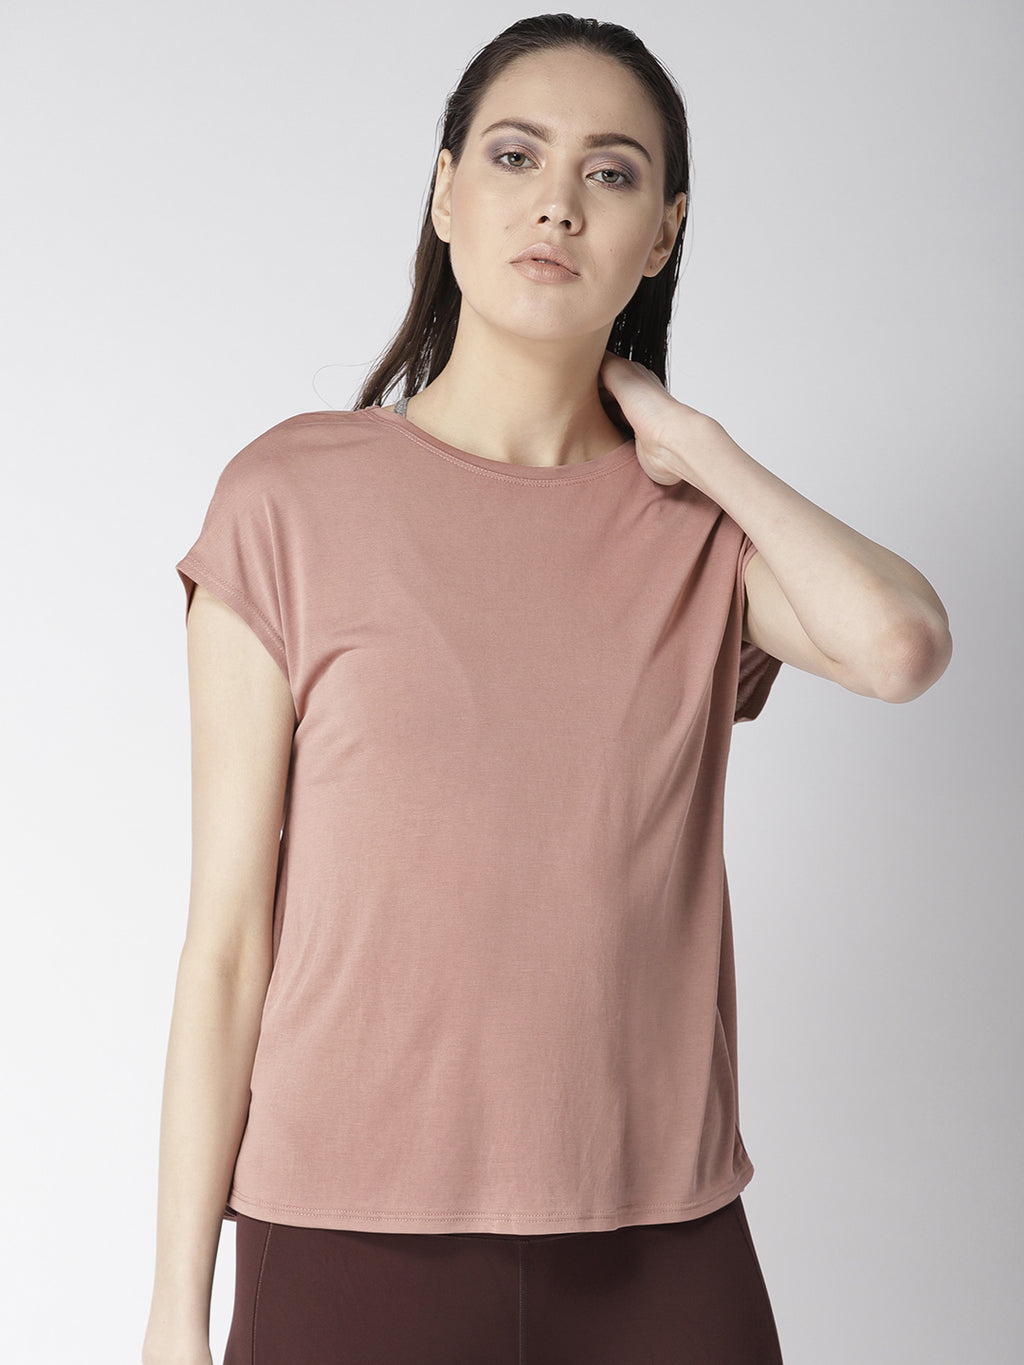 Fitkin Pink Relaxed Fit Yoga Back Tie Top